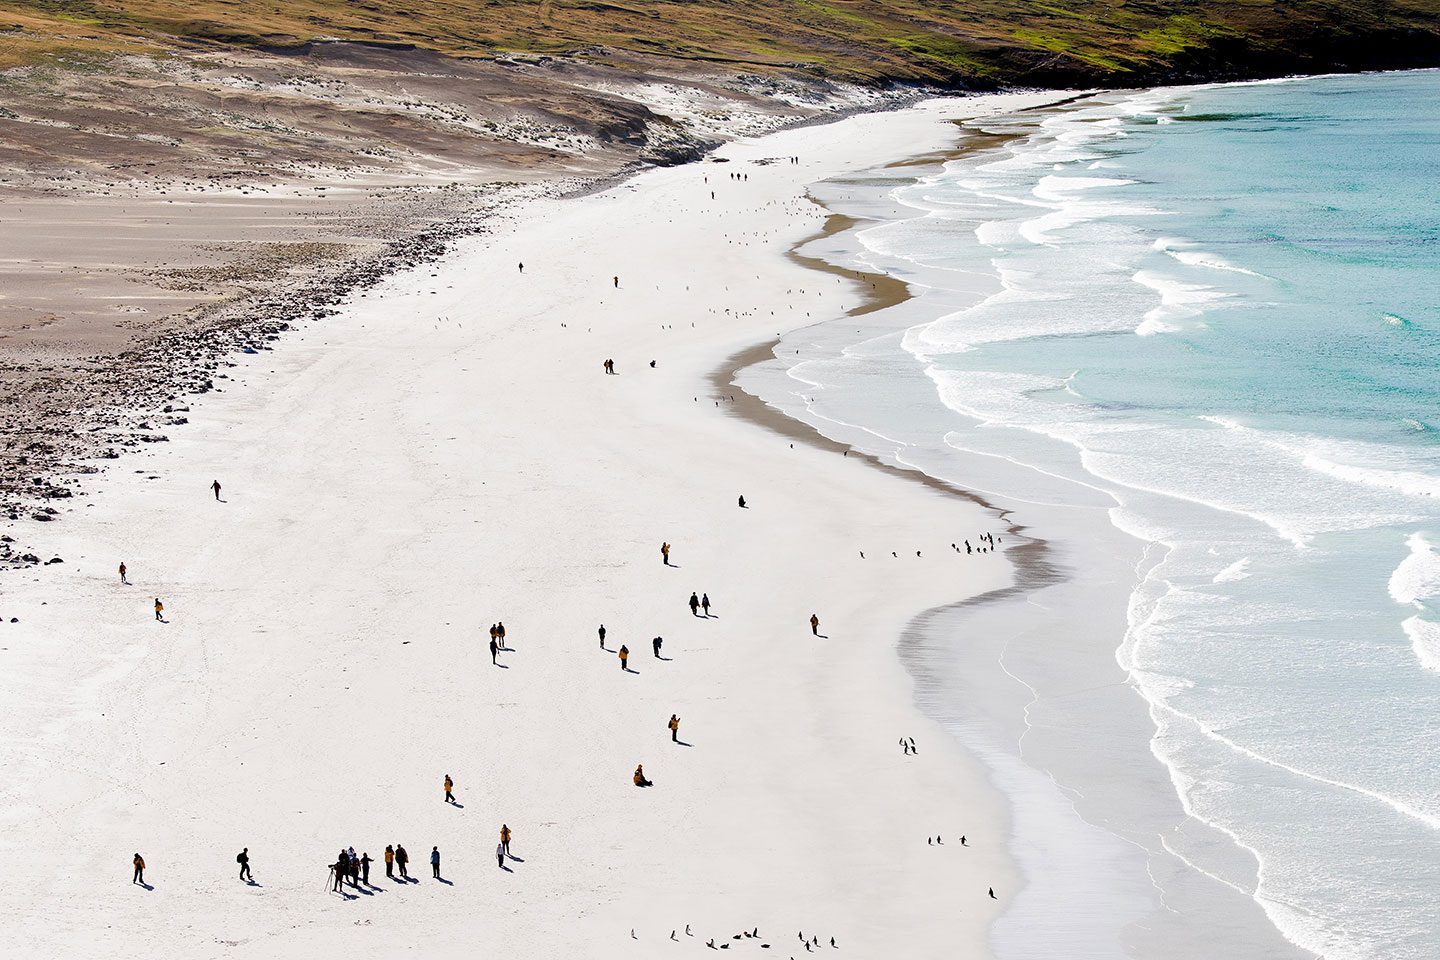 Visitors to the Falkland Islands are often surprised to discover so many sandy beaches on this remote sub-Antarctic island